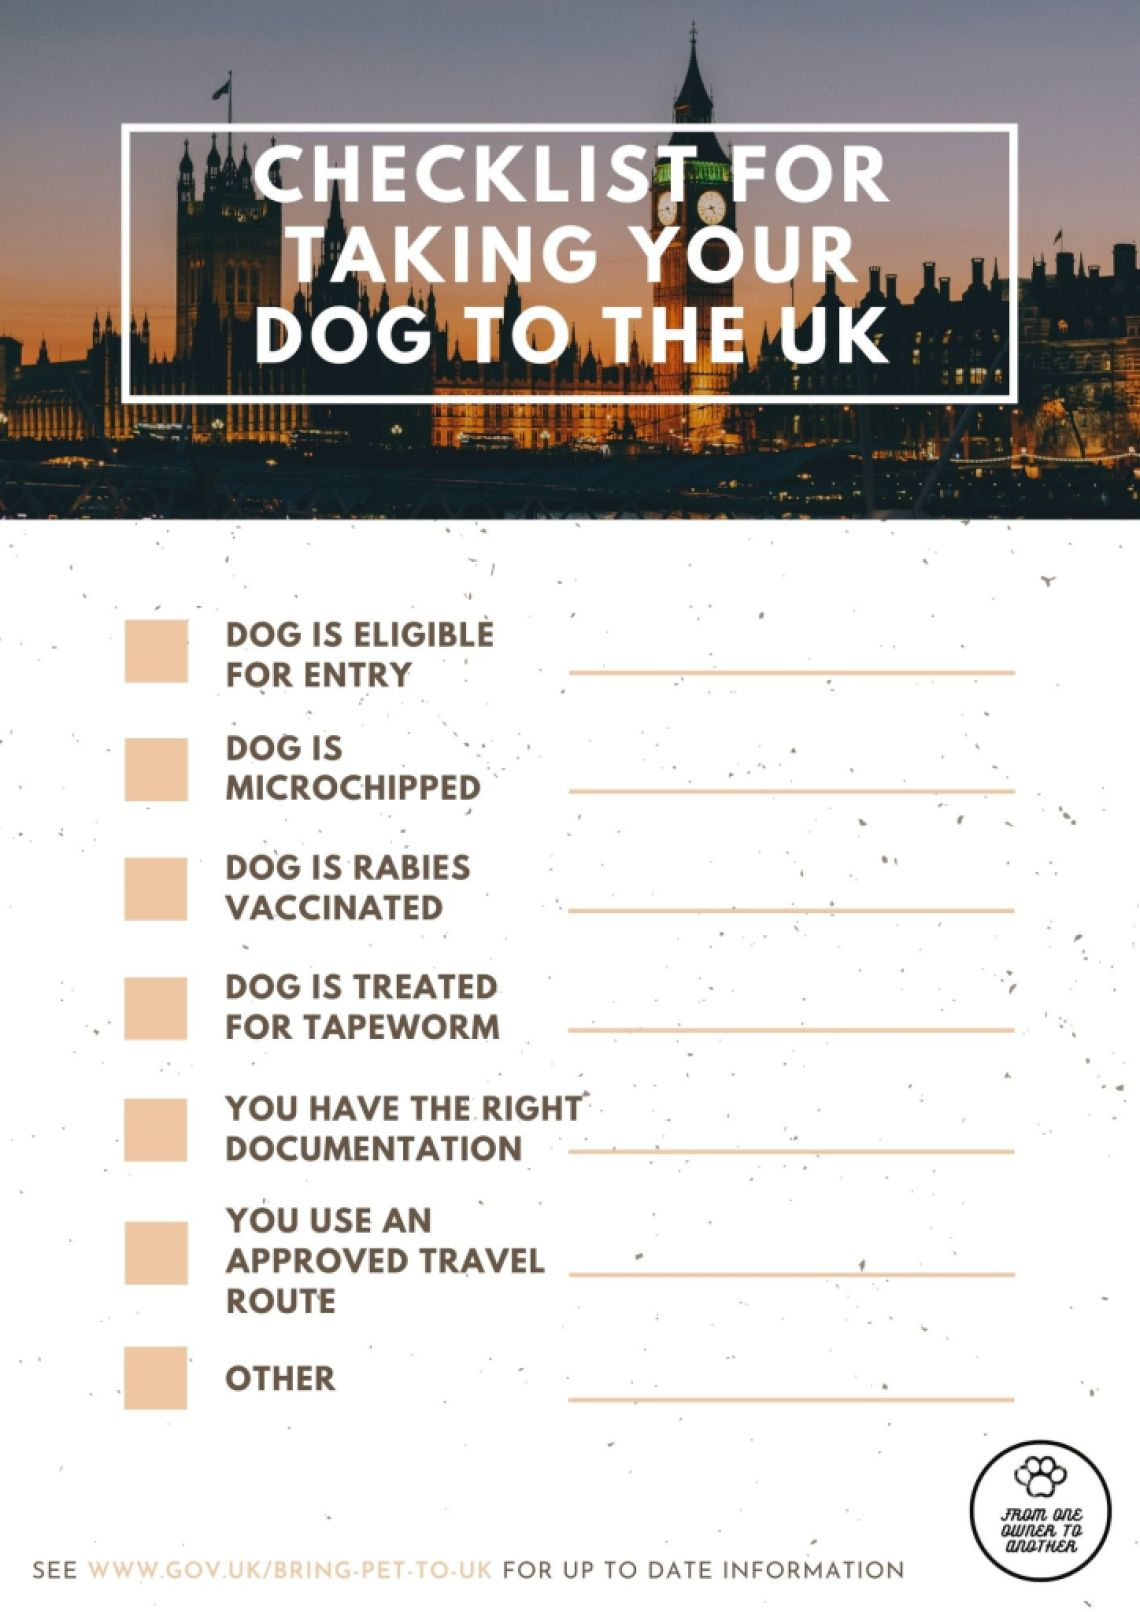 Checklist for taking your dog to the UK